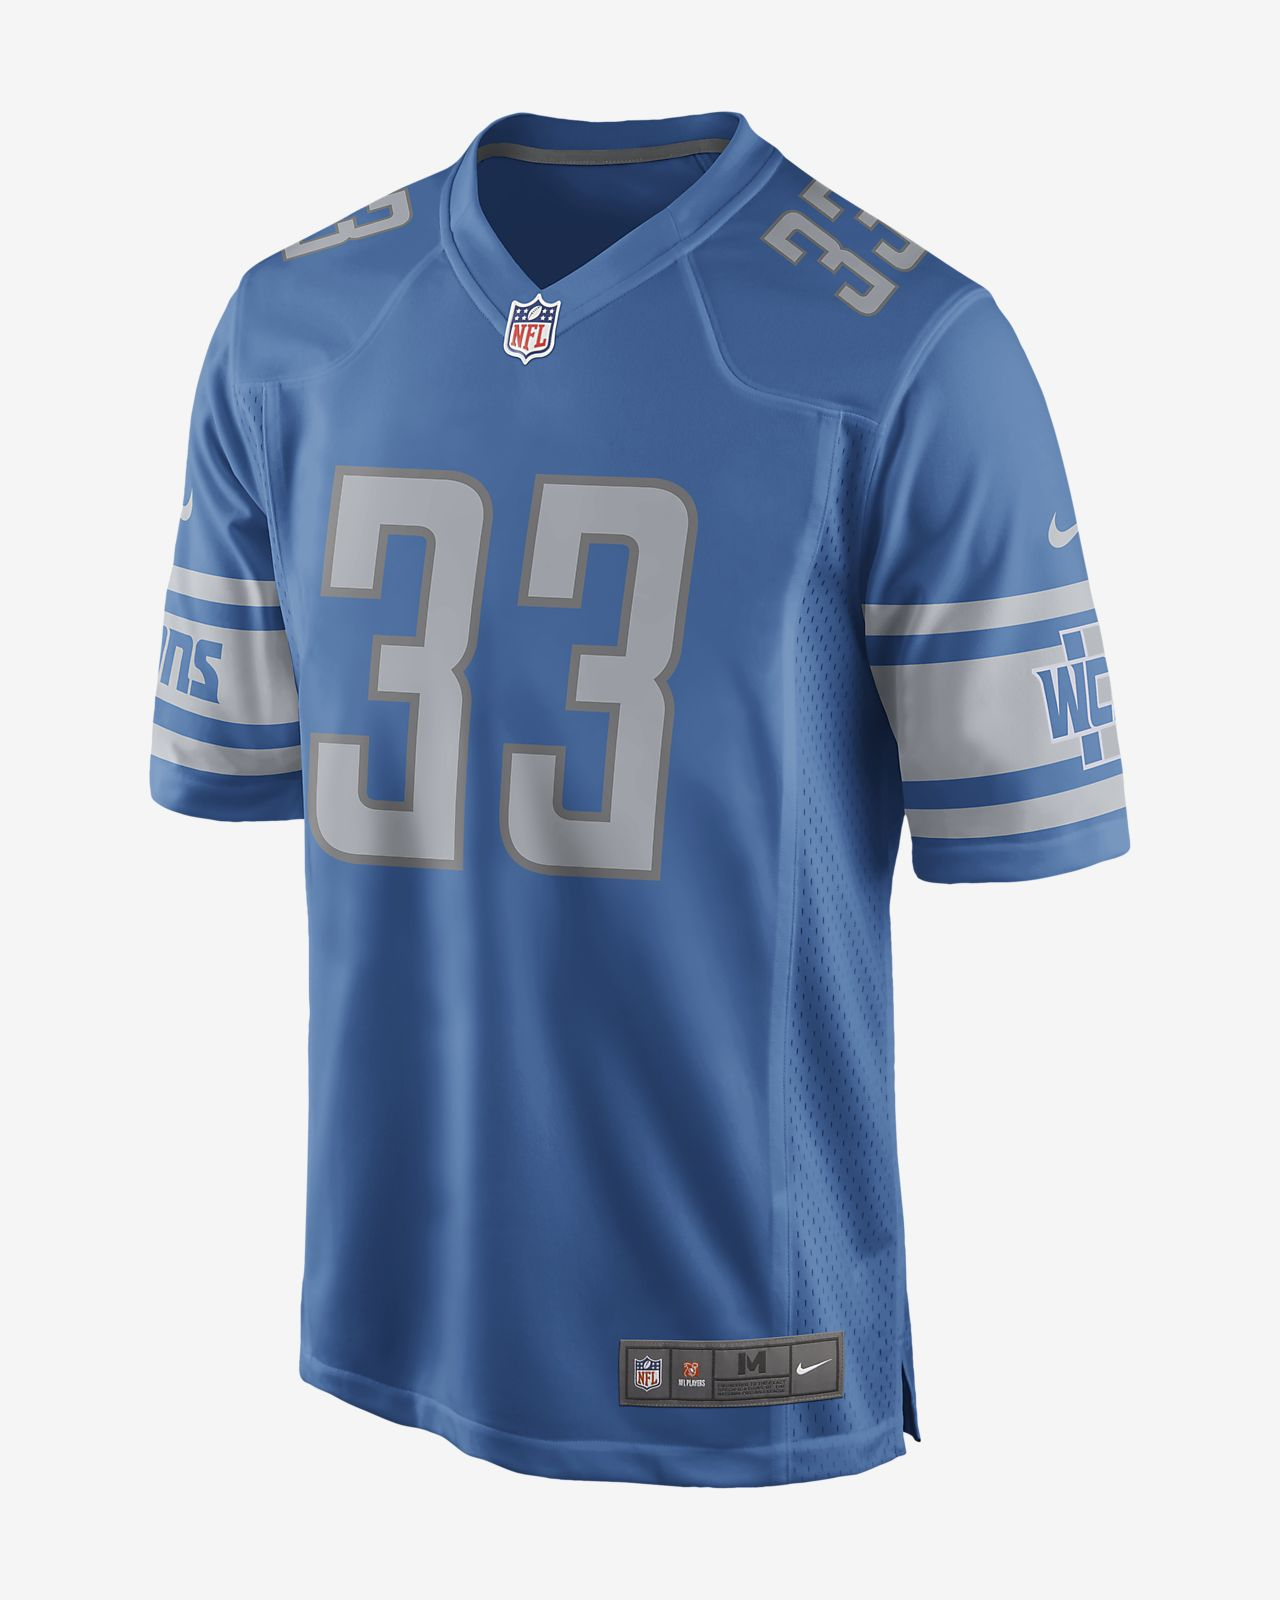 91f9ad1d NFL Detroit Lions (Kerryon Johnson) Men's Game Football Jersey